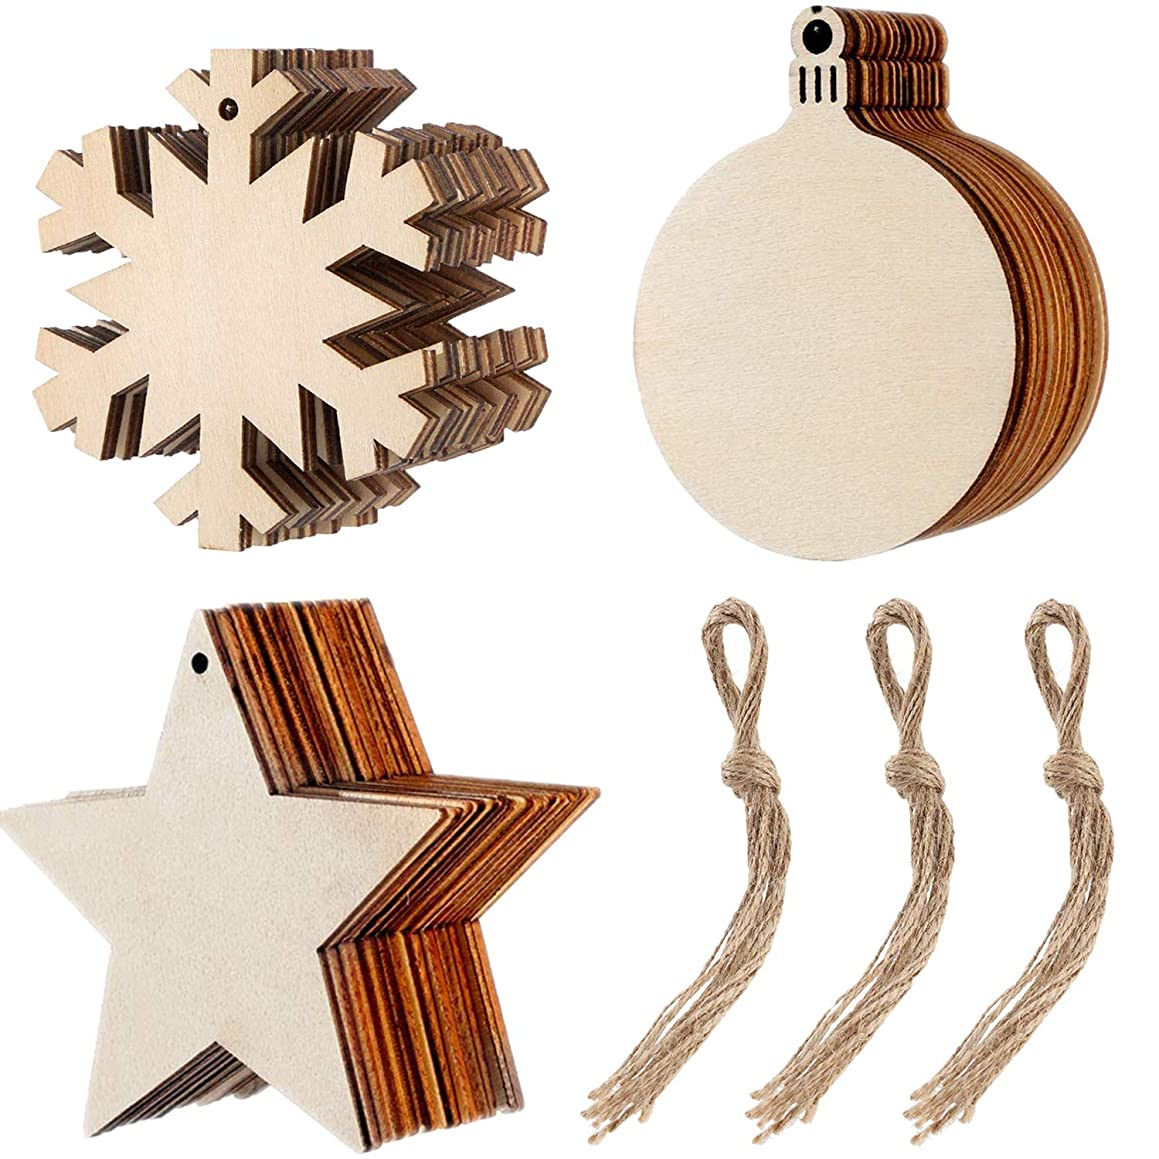 eborder 30 Pieces Christmas Unfinished Wooden Ornaments Round Wood Discss Snowflake Star Hanging Embellishments with 30 Pieces Cords for Christmas Decorations and Crafts